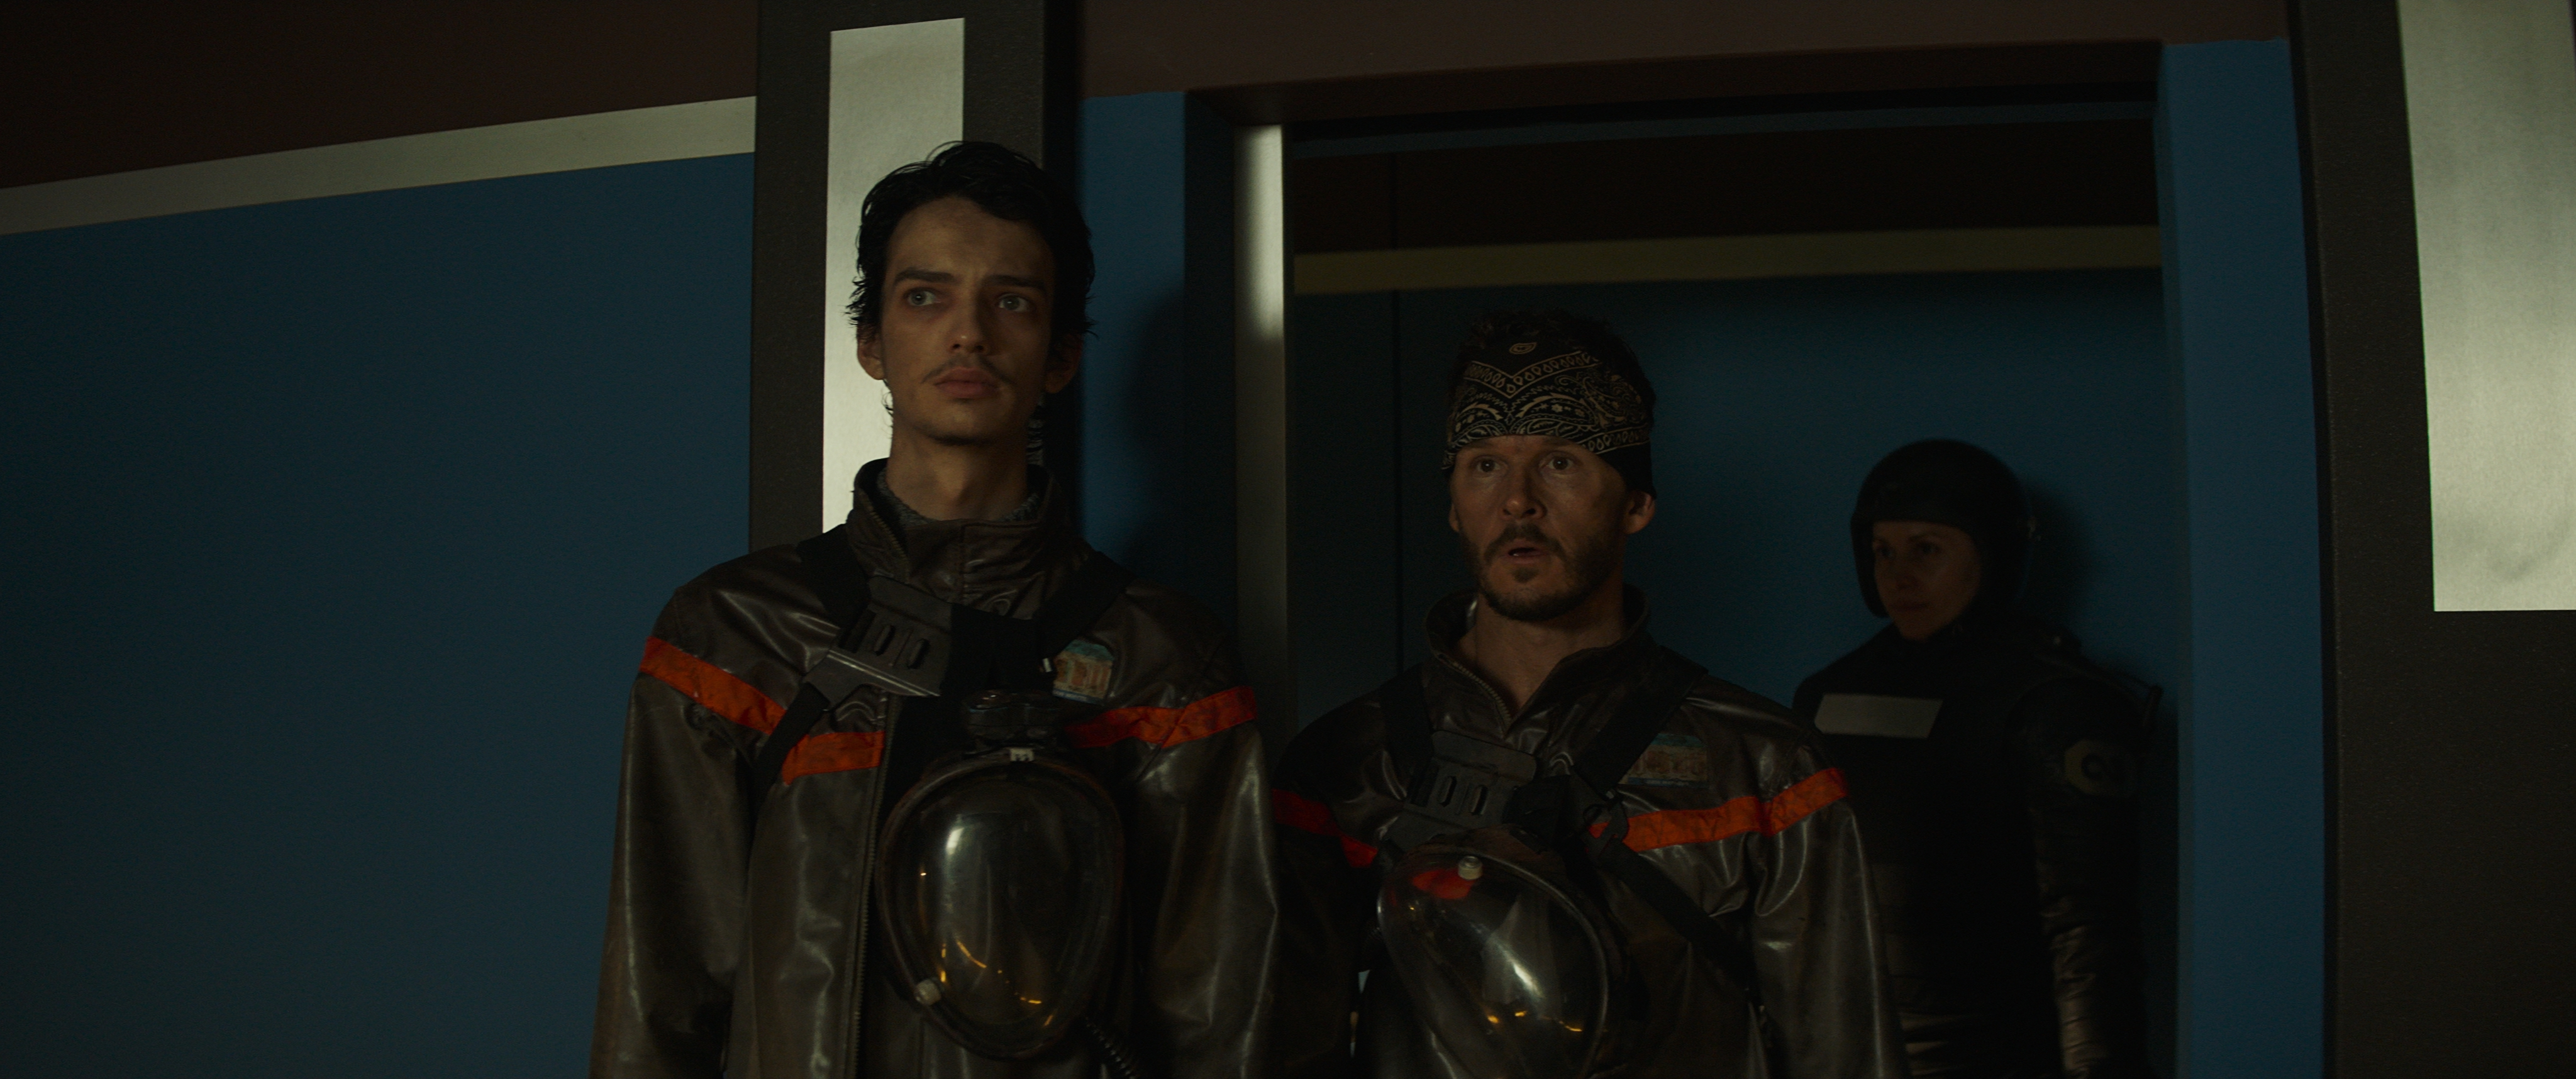 (L - R) Kodi Smit - McPhee as Ethan Whyte and Ryan Kwanten as Jude Mathers in the sci - fi thriller, 2067 , an RLJ E Films release. Photo courtesy of RLJ E Films